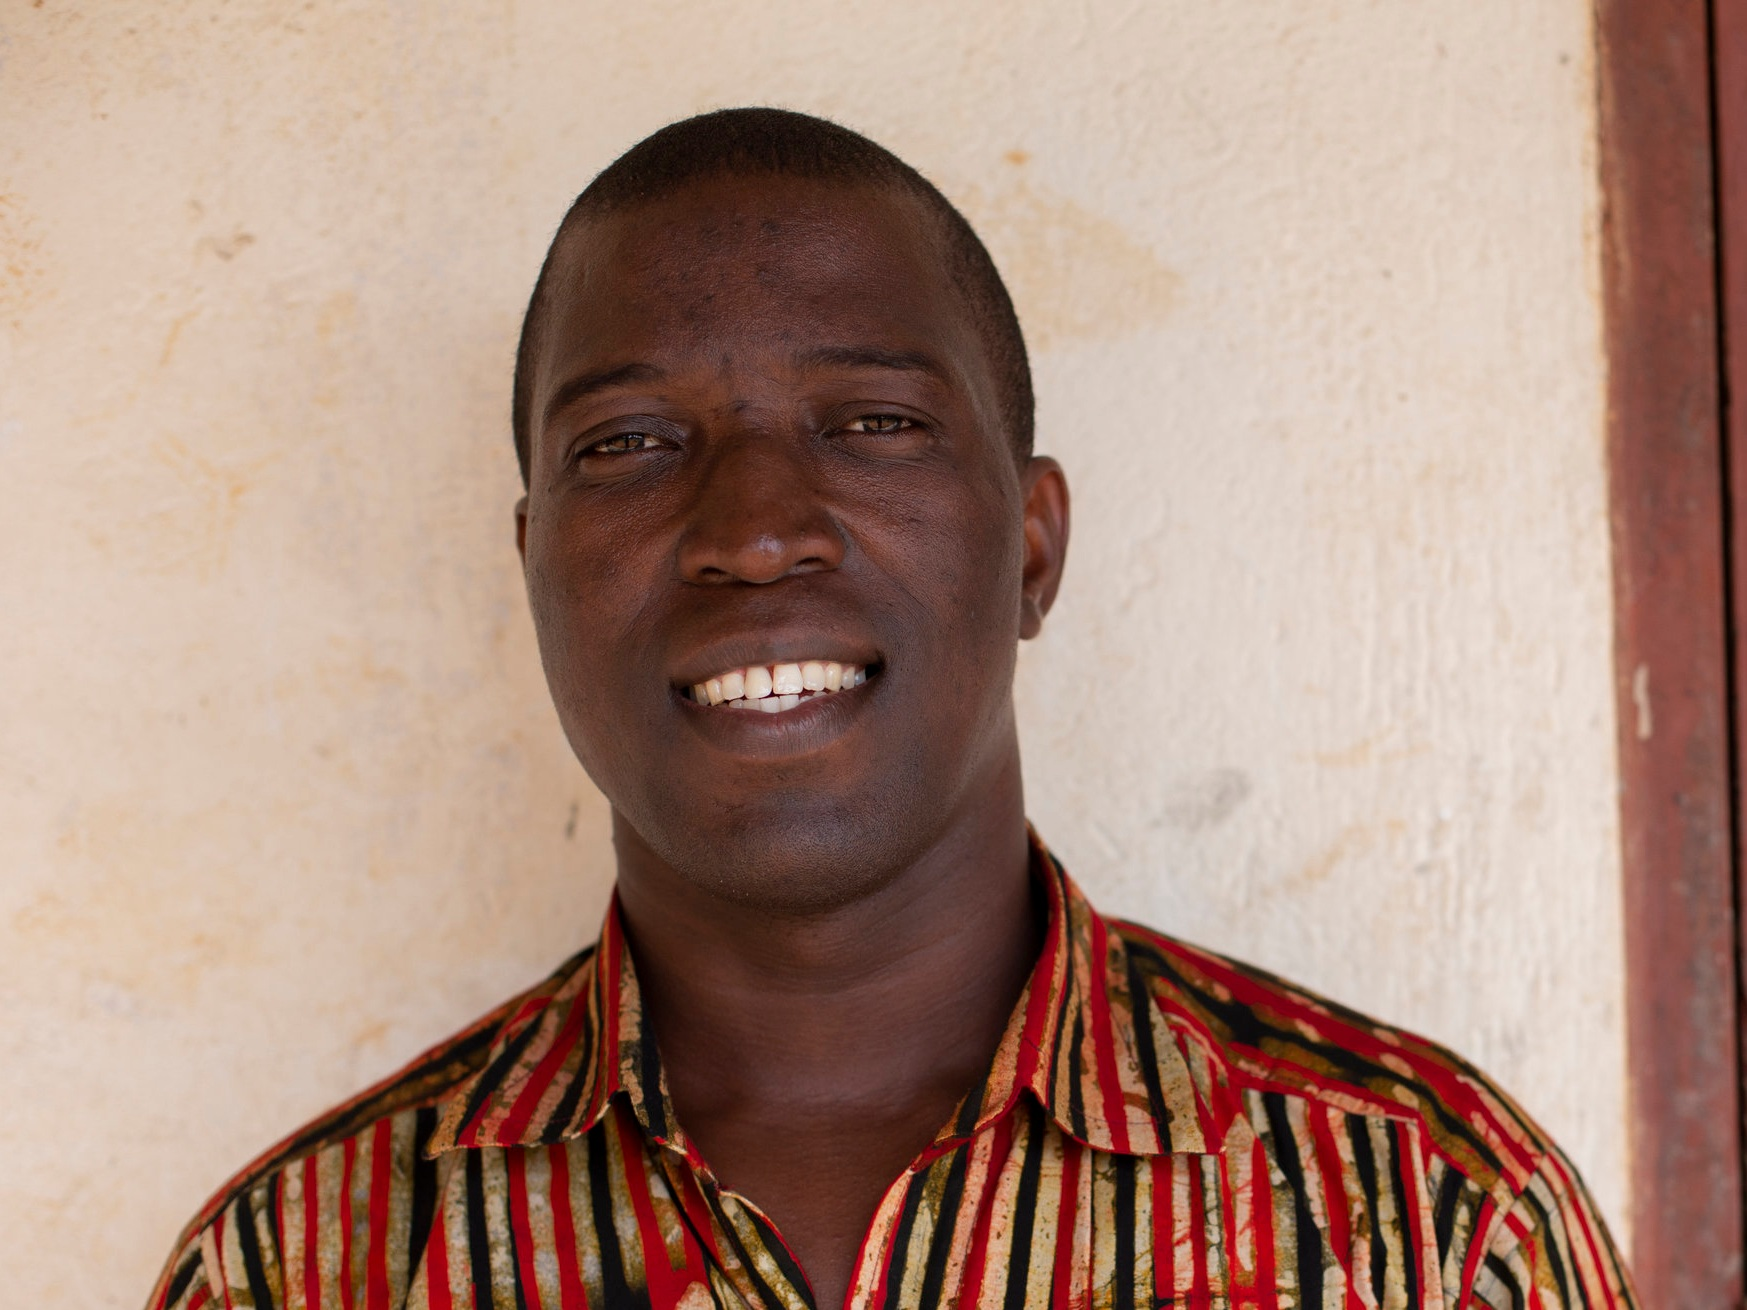 George Thompson - Projects Director (Ghana), George heads EPI's construction projects including boreholes, BioFil toilets, and school construction. George also helps with merry-go-round maintenance as well as science kit training and distribution.